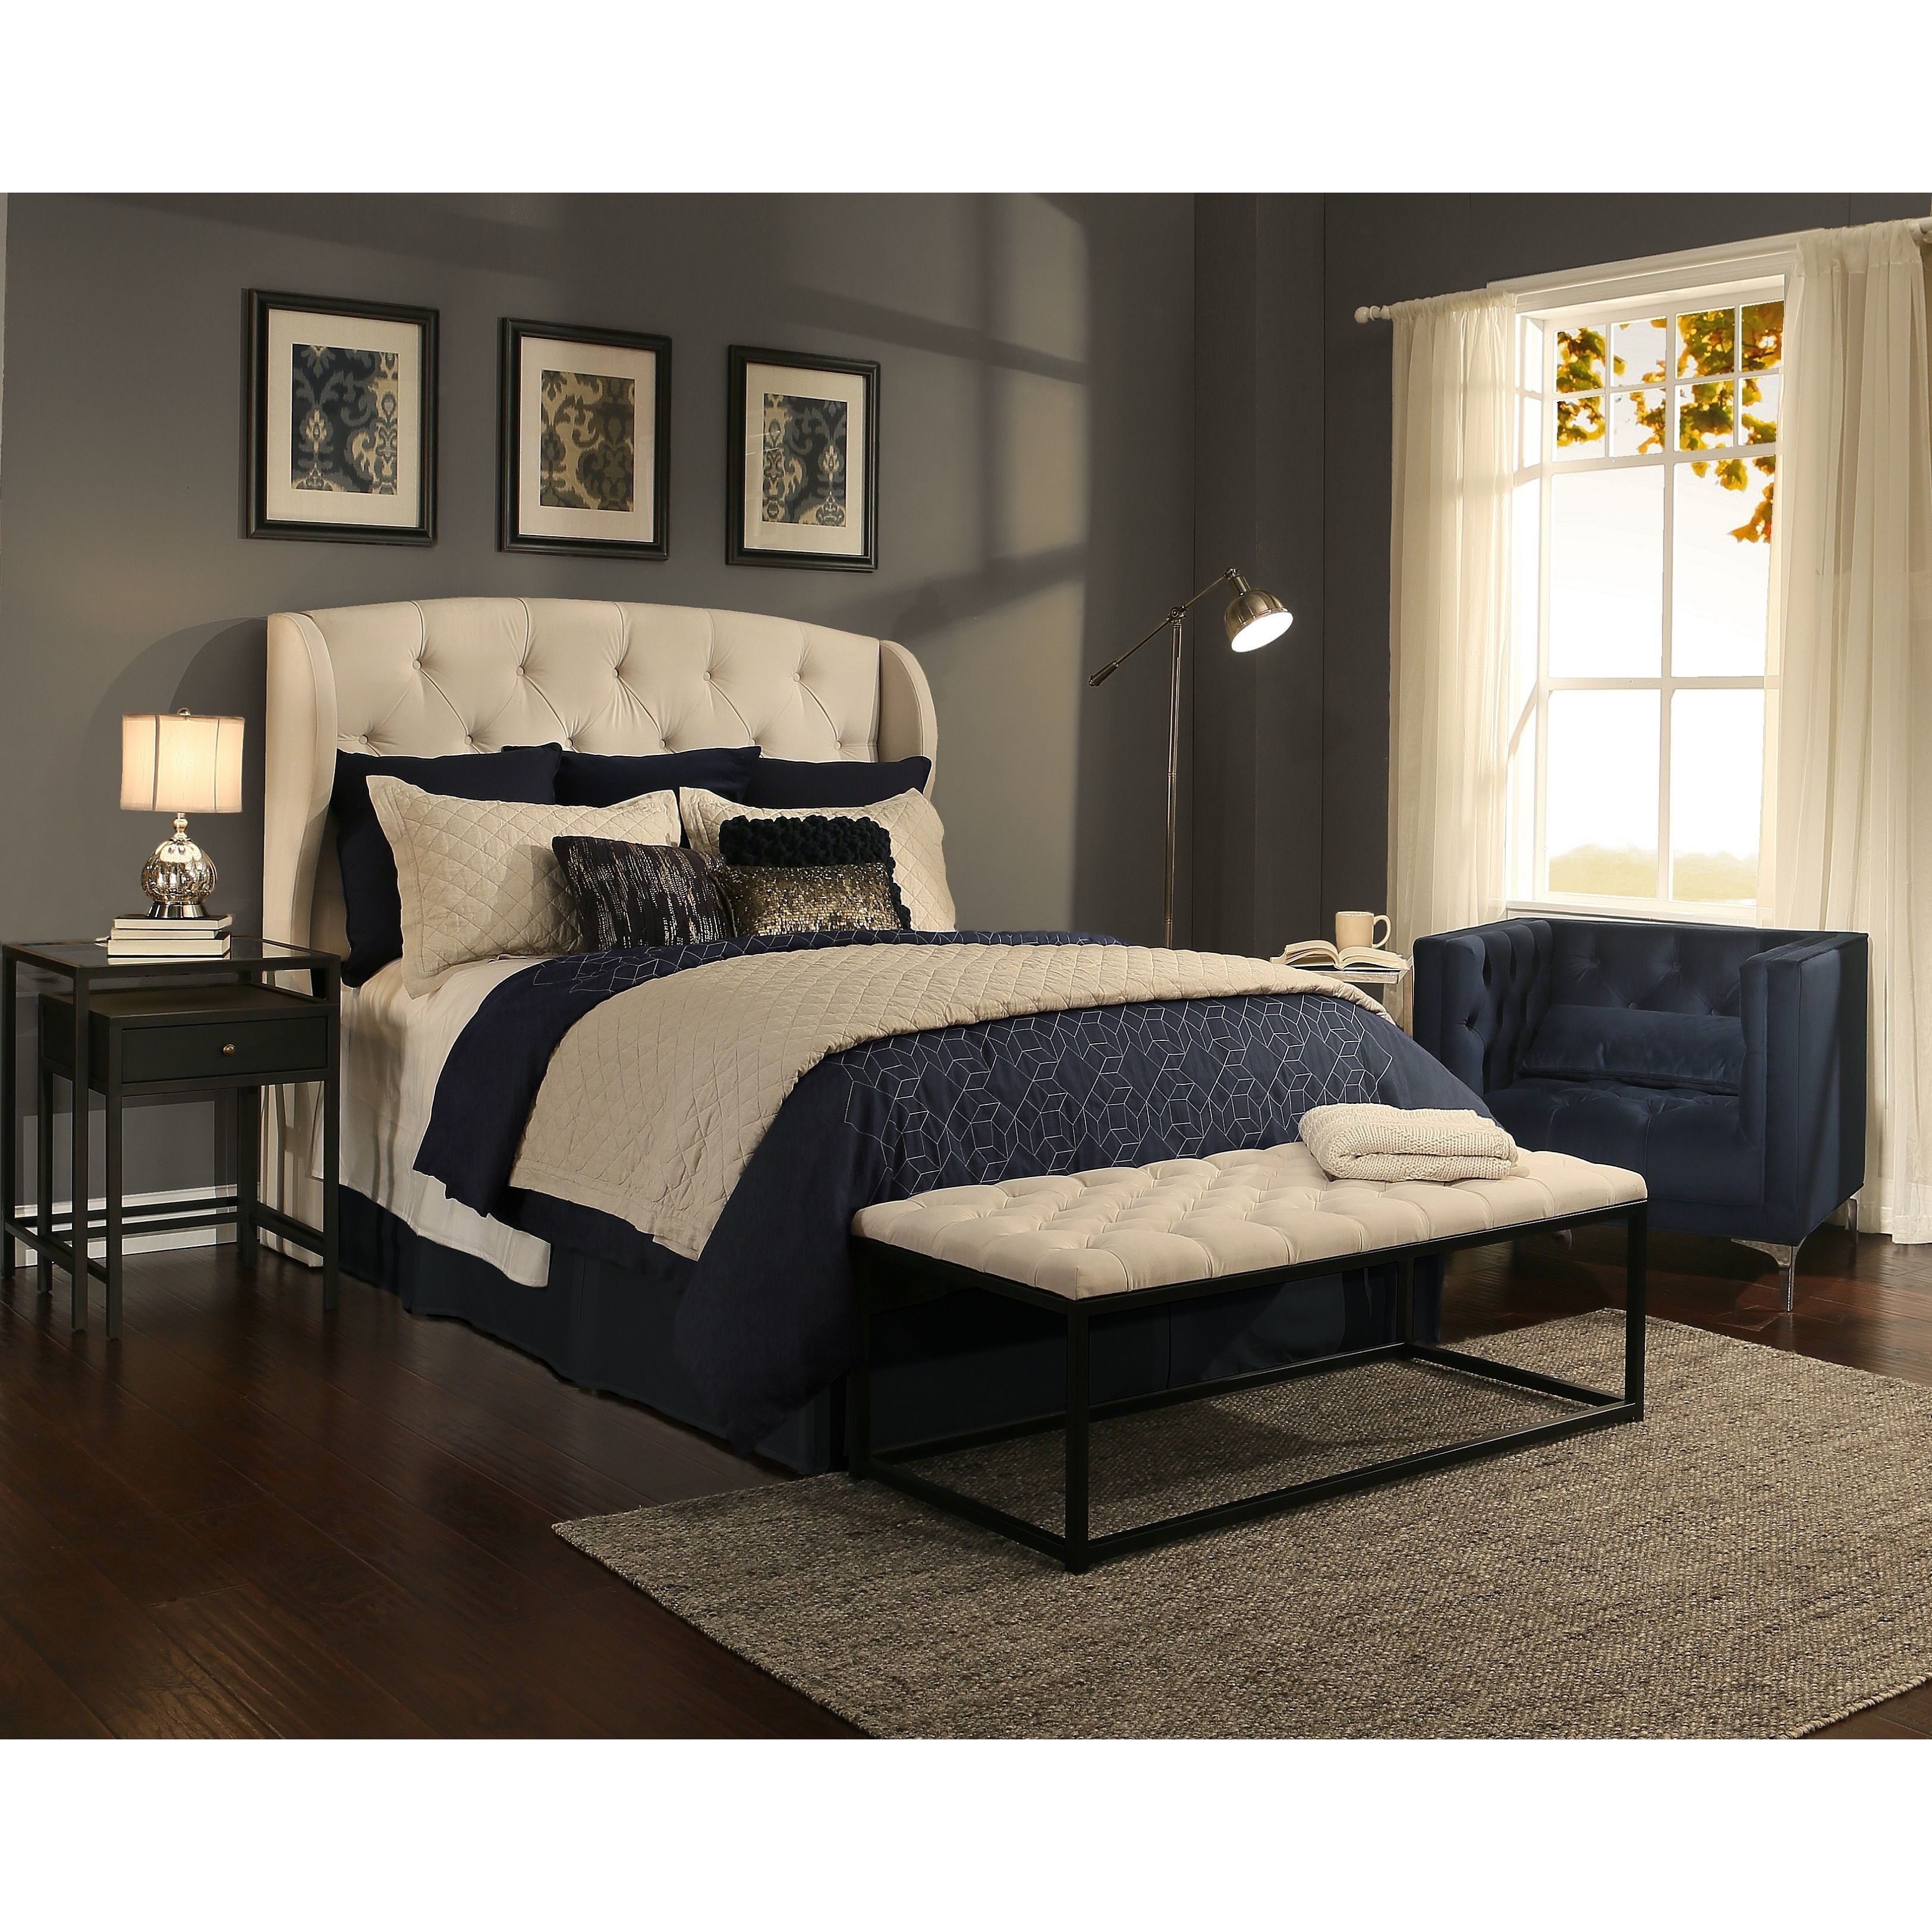 Bedroom Color Ideas With Dark Furniture Bedroom Decorating Ideas With Tufted Headboard Zen Master Bedroom Ideas Bedroom Color Ideas Gray: Republic Design House Archer Ivory Tufted Upholstered